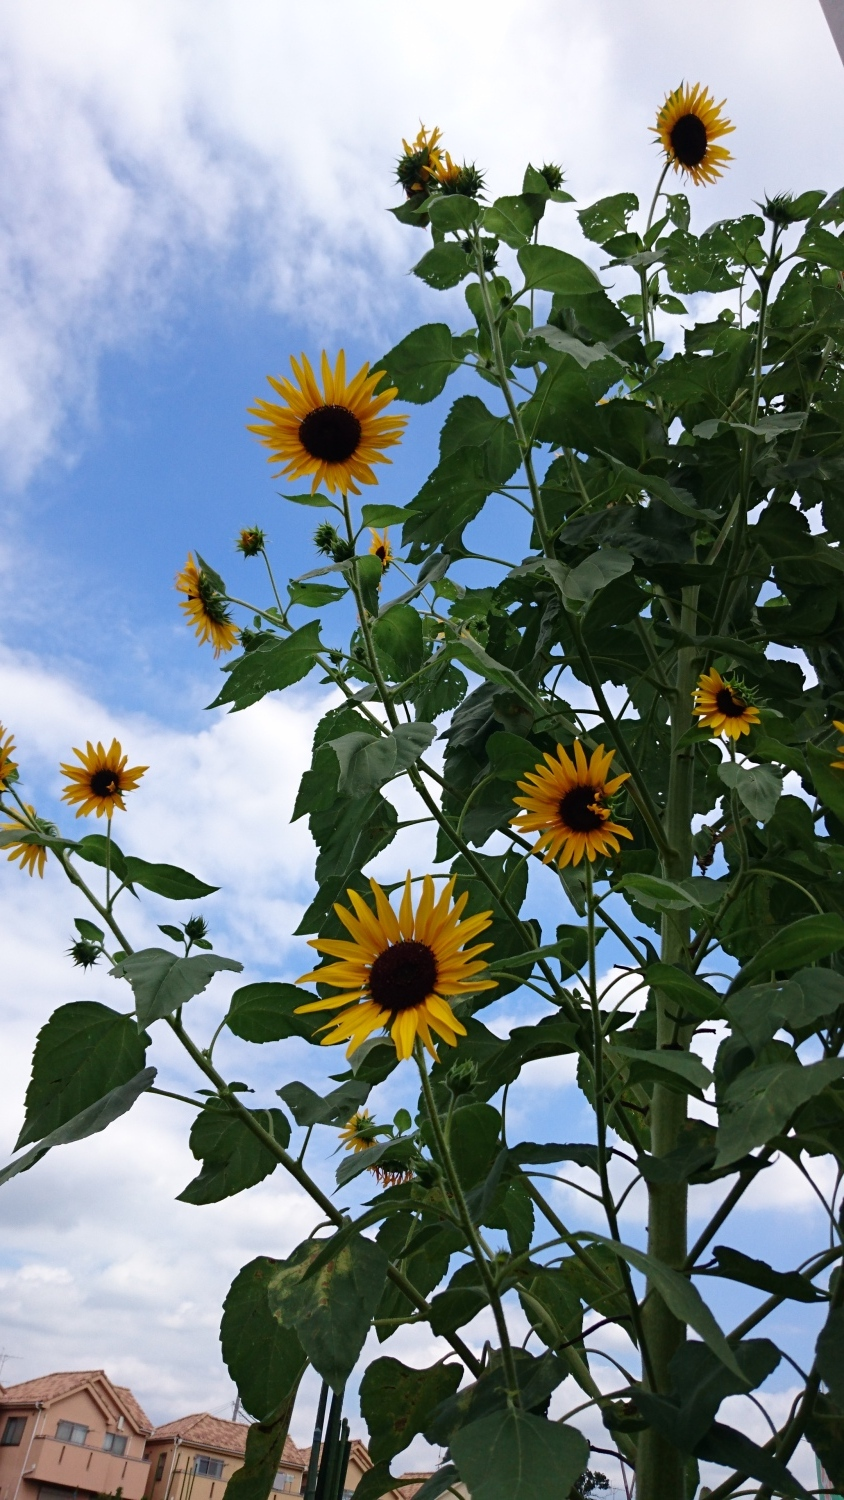 Summer trace blue sky and sunflower